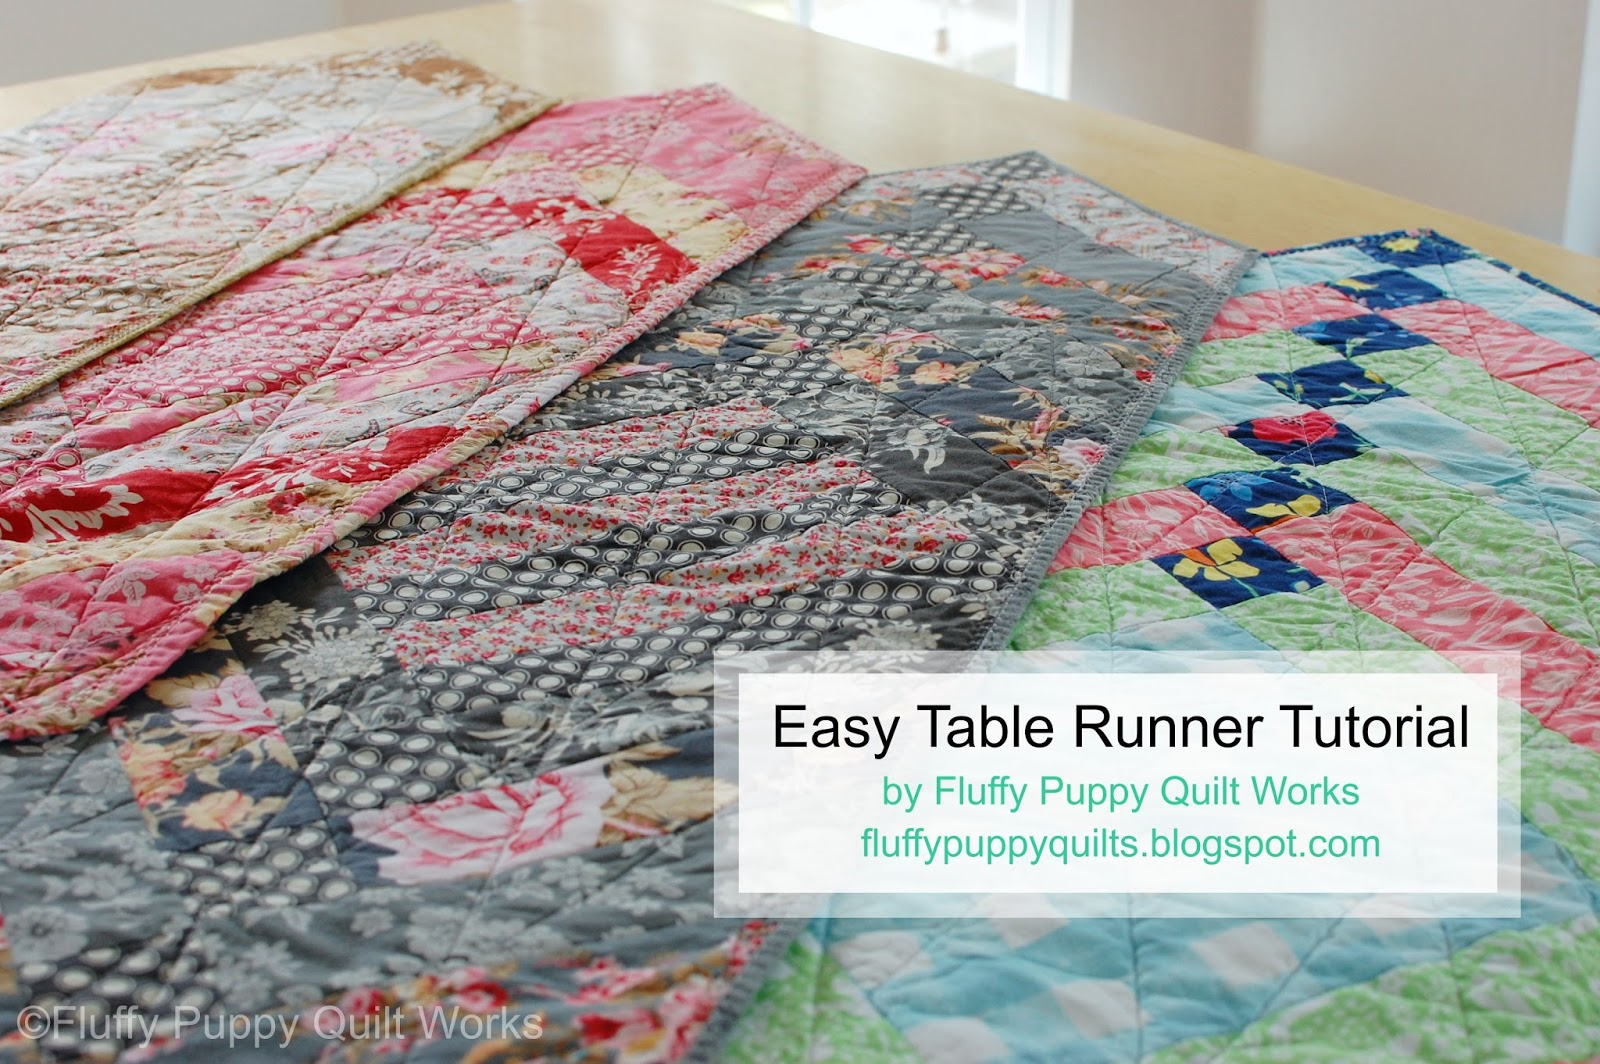 Fluffy Puppy Quilt Works Easy French Braid Table Runner